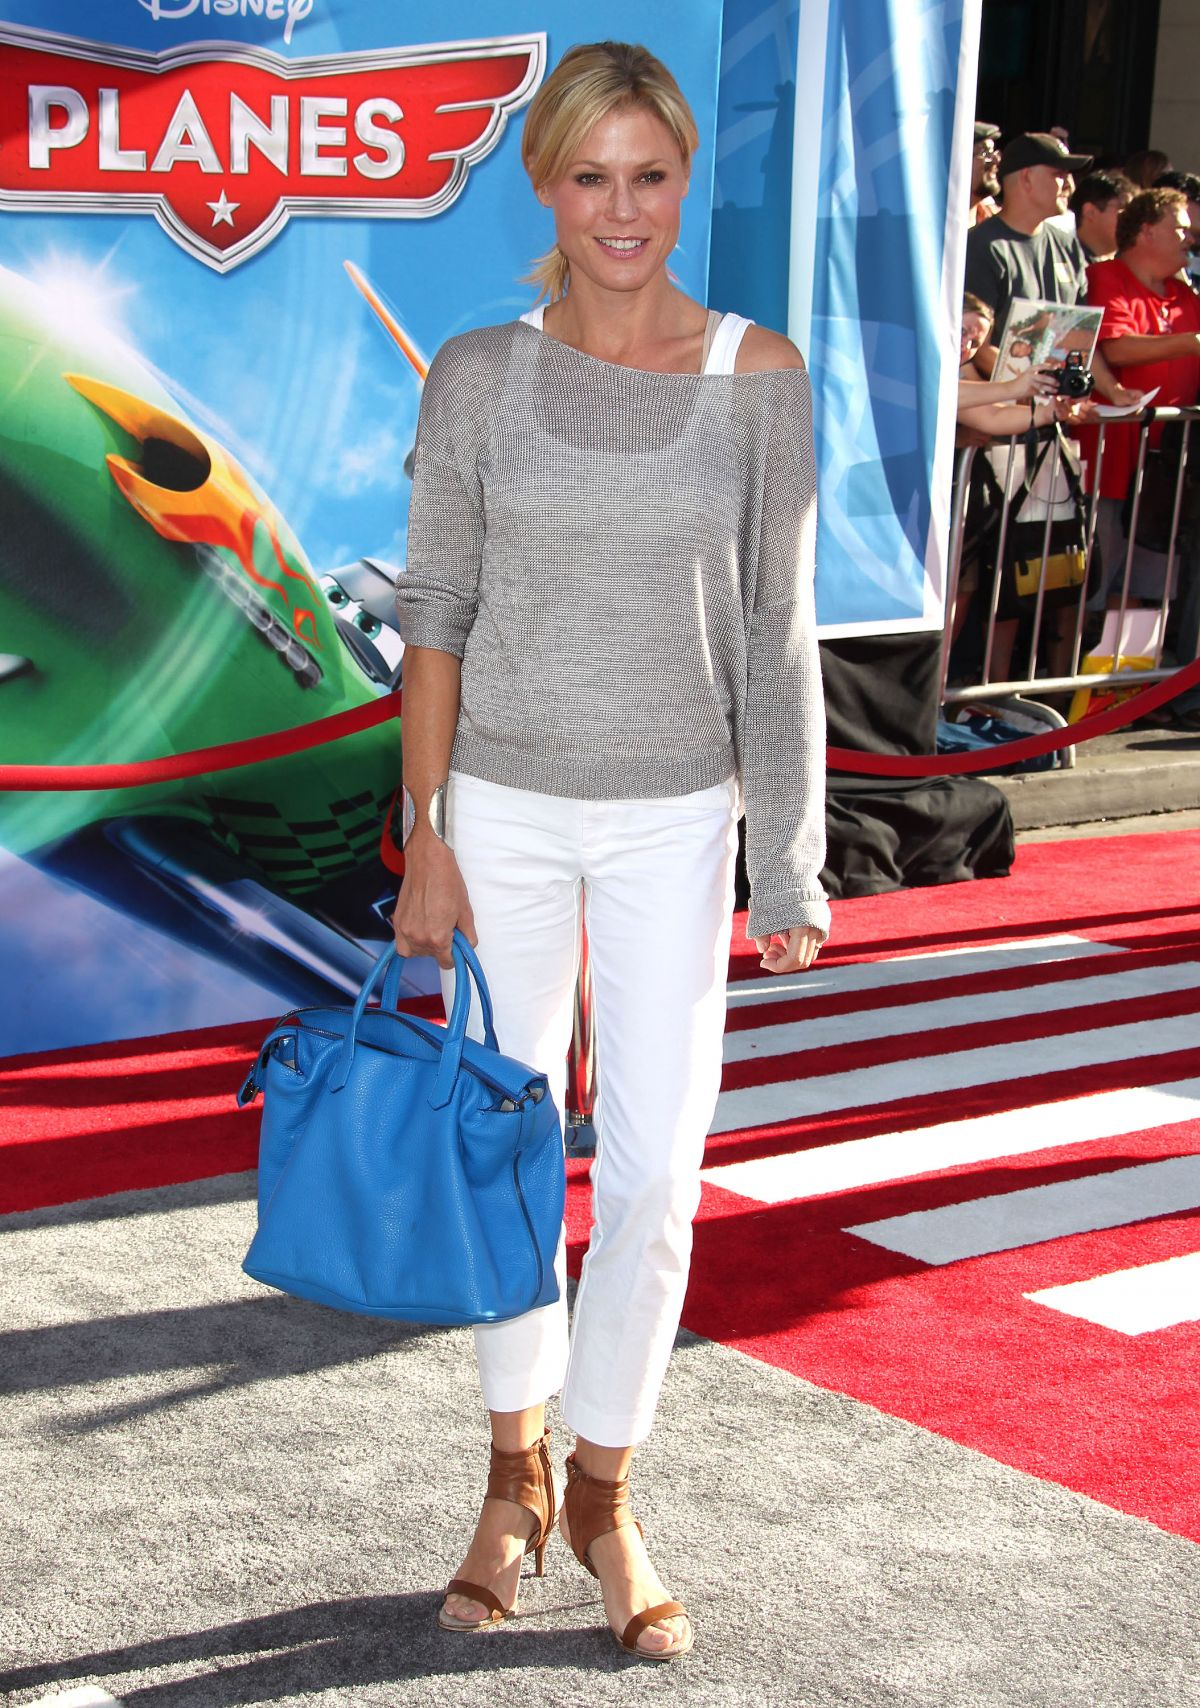 Julie Bowen At The Planes Los Angeles Premiere In Hollywood